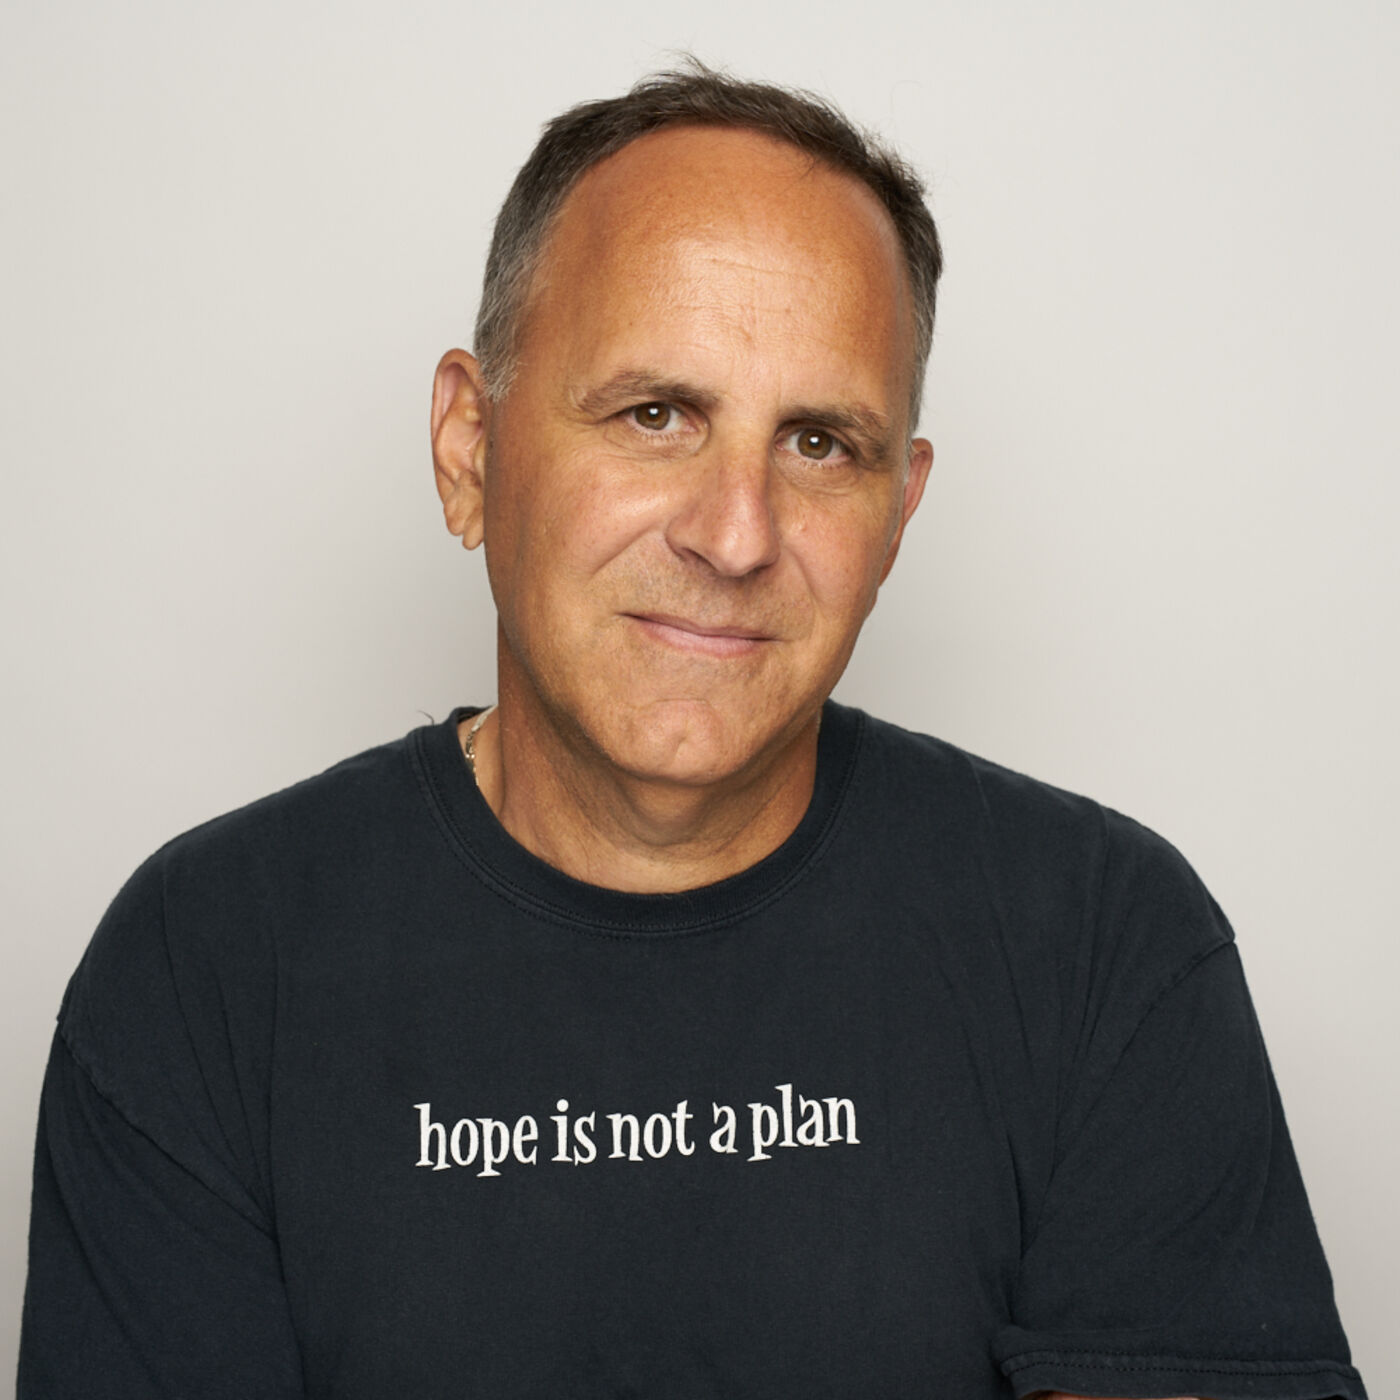 Author, Screen Writer, and Snarky shirts too! | Henry Dass